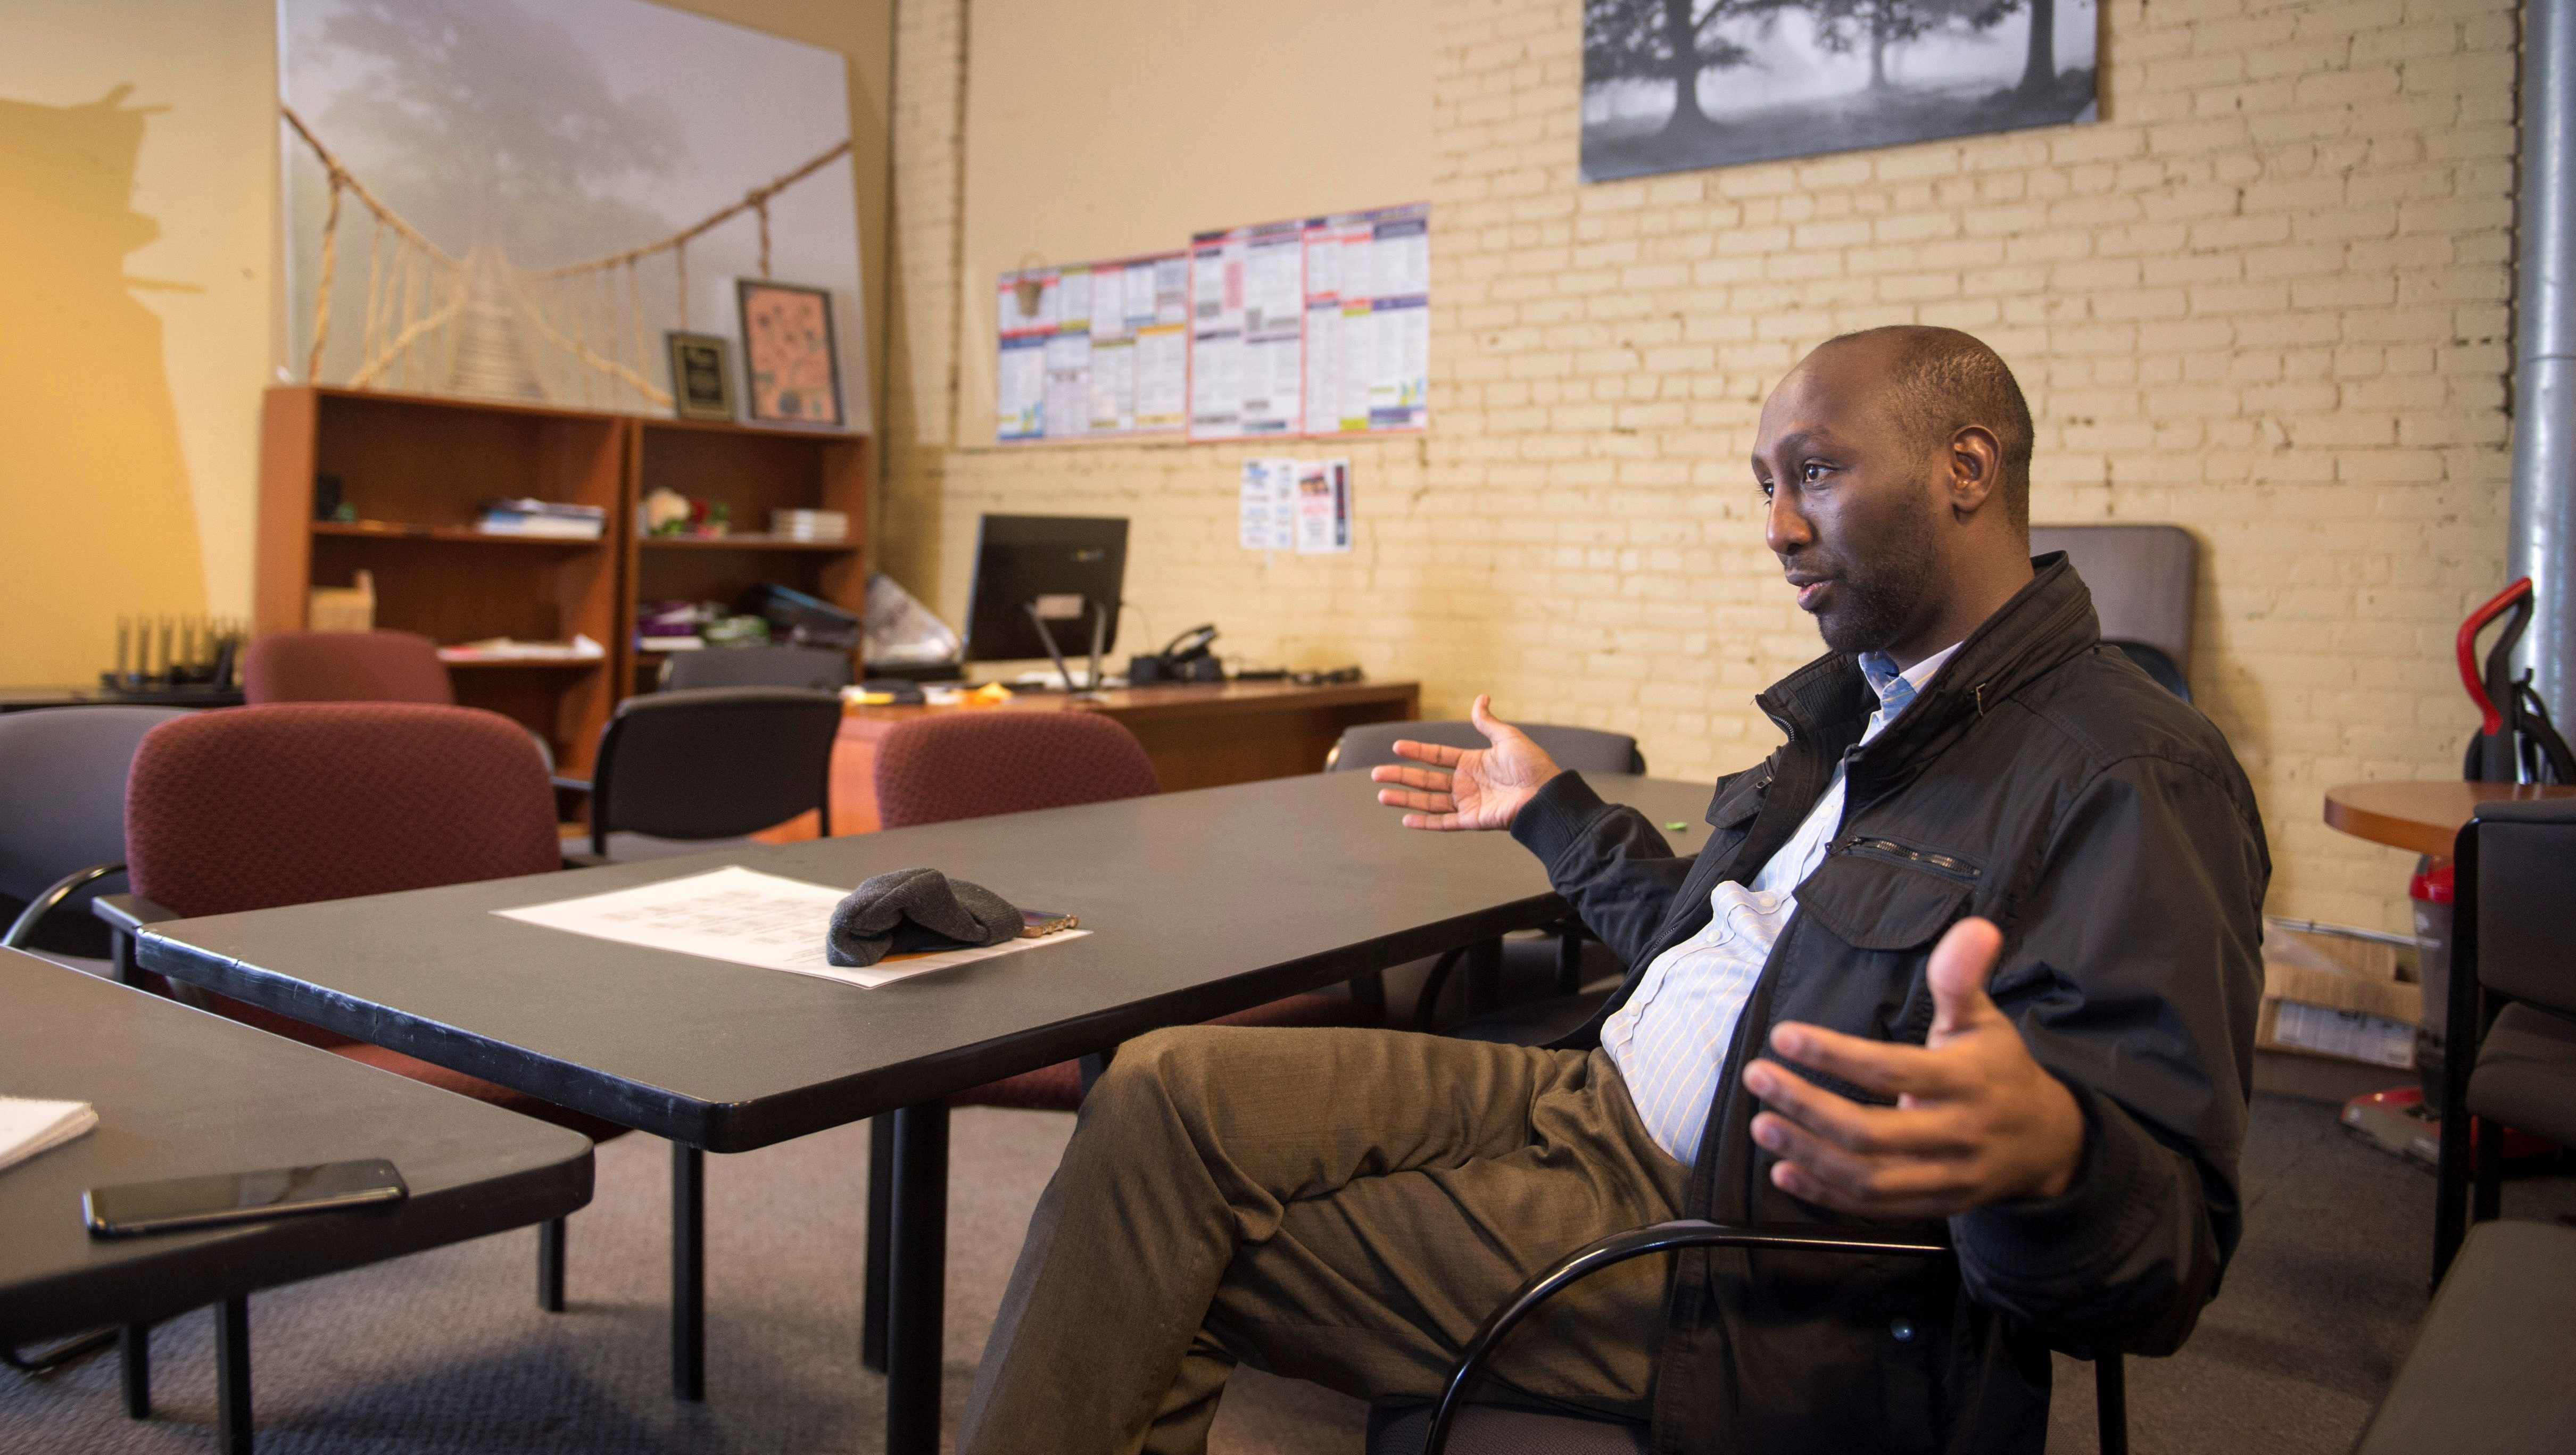 Mohamud Noor, Executive Director of the Confederation of Somali Community in Minnesota talks with a reporter in his office ahead of the NFL's Super Bowl in Minneapolis, Minnesota, U.S. January 19, 2018. Picture taken January 19, 2018.